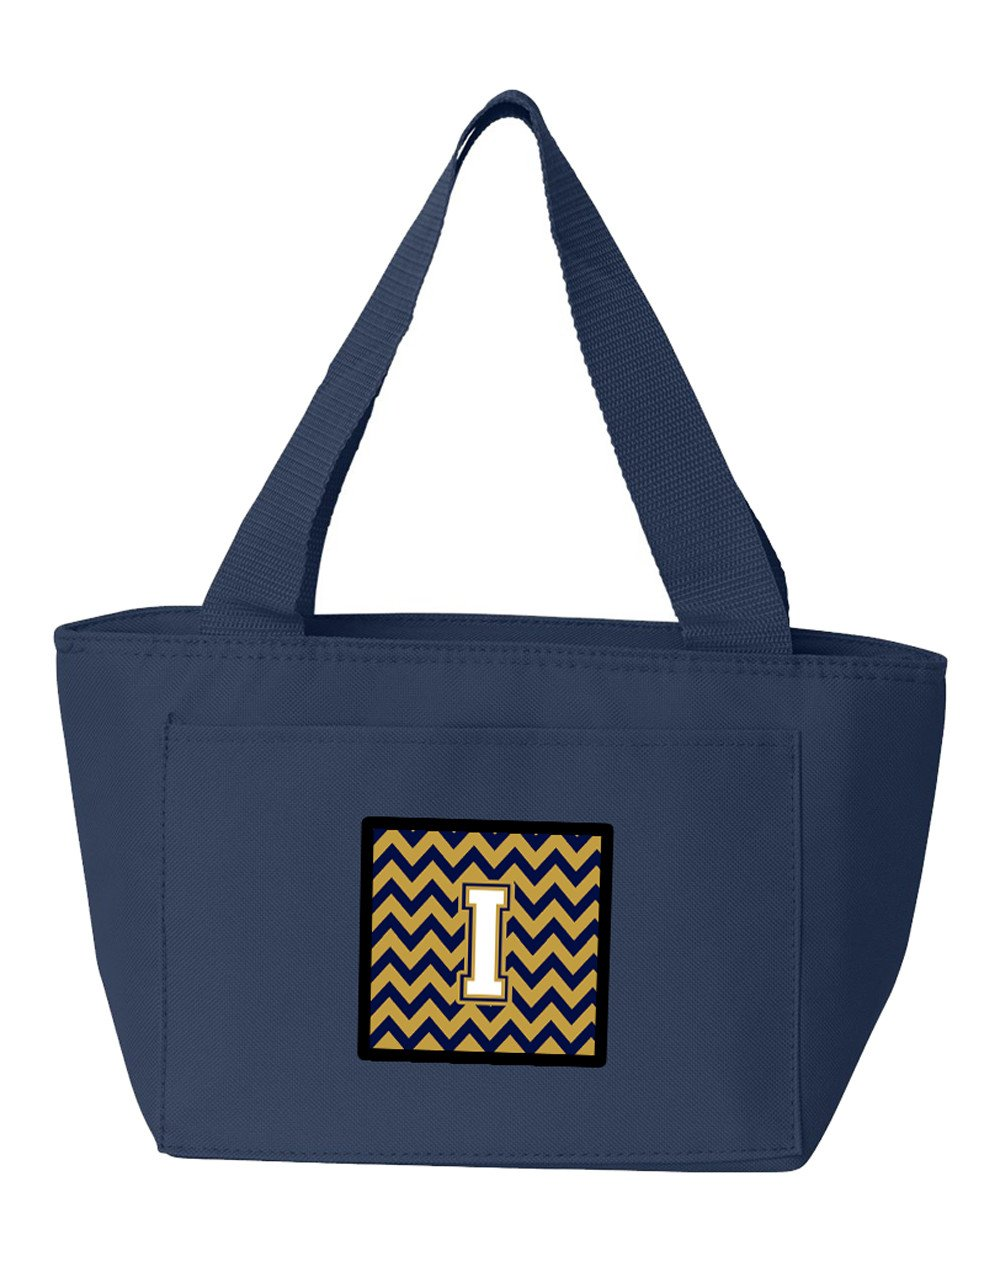 Letter I Chevron Navy Blue and Gold Lunch Bag CJ1057-INA-8808 by Caroline's Treasures